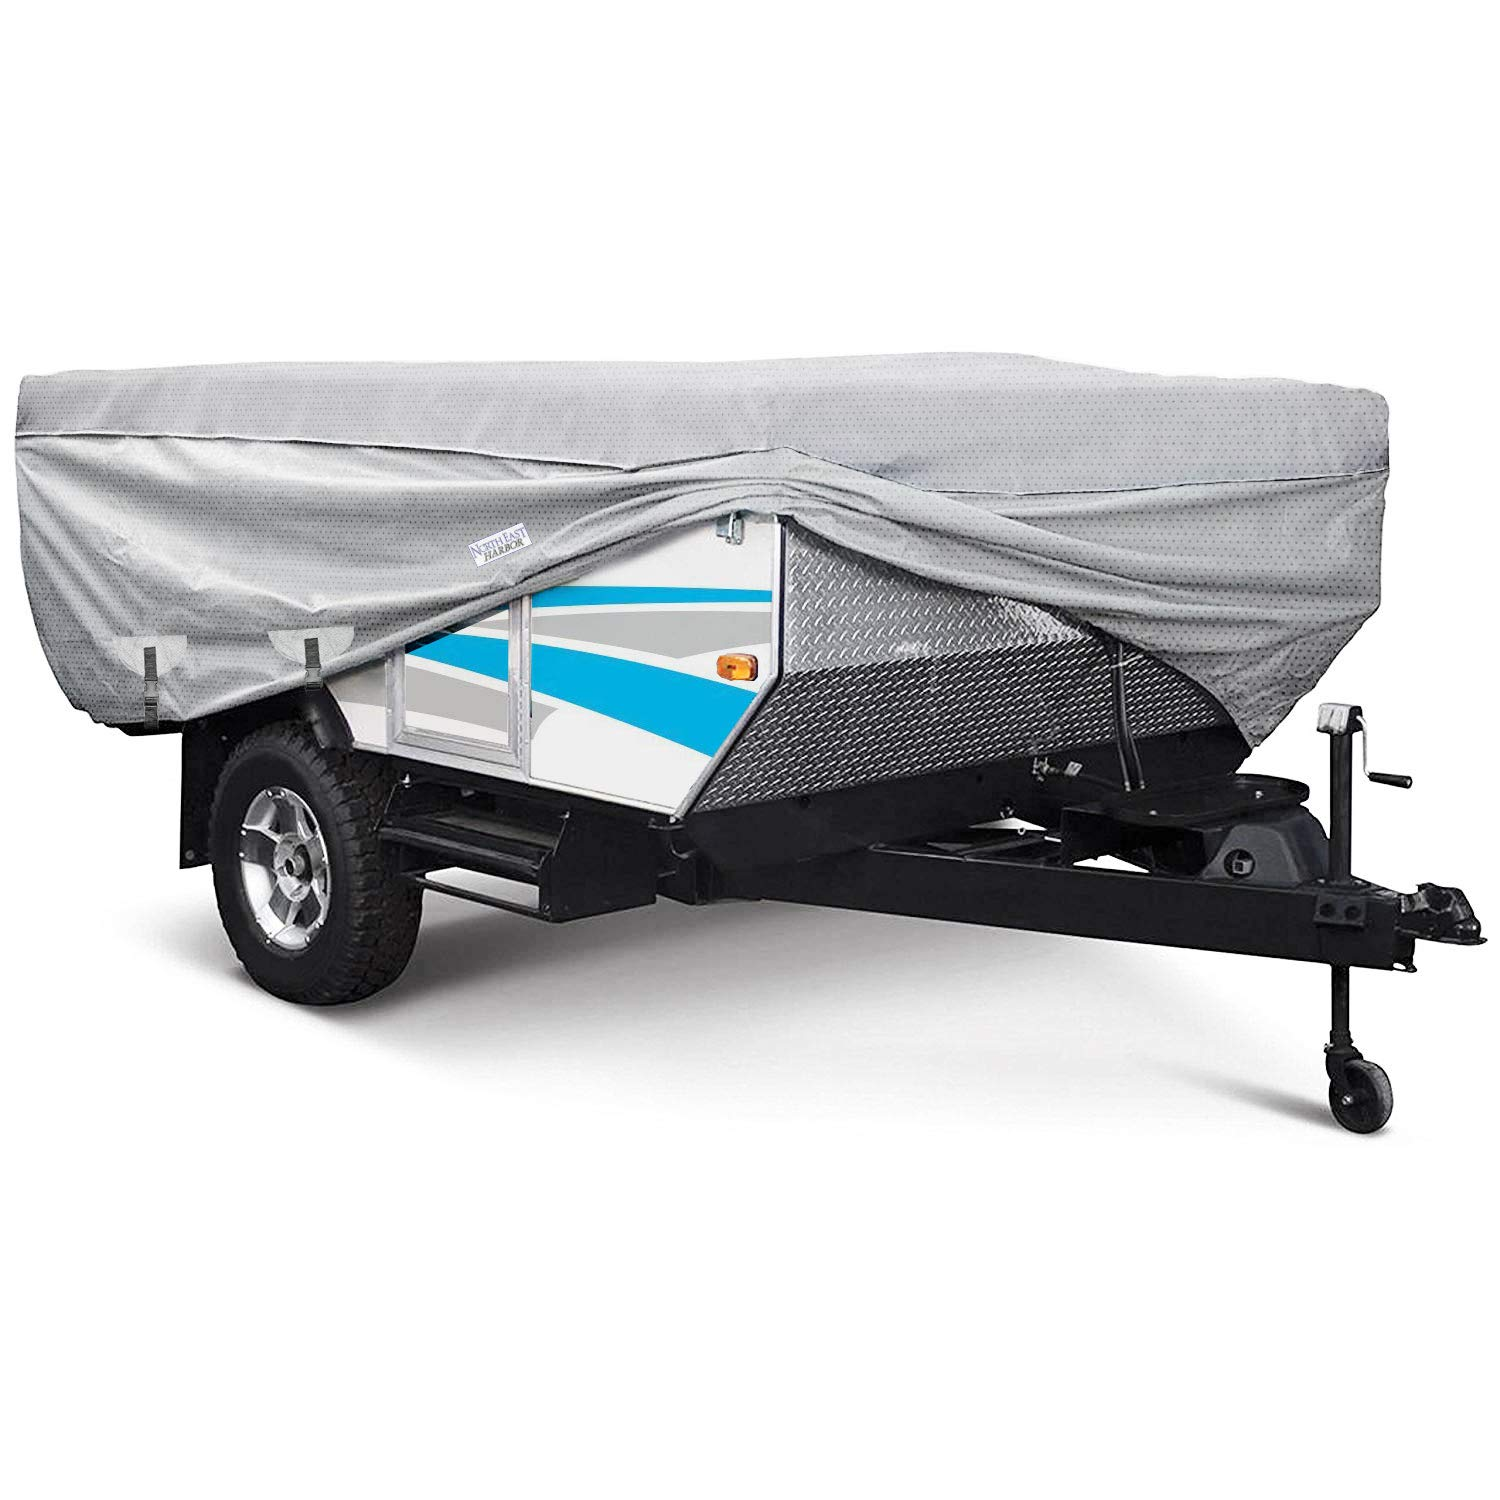 Waterproof Superior Folding Camping Travel Trailer Storage Cover Fits Length 12'-14' Heavy Duty 4 Layer Fabric Pop-Up Tent Trailers Cover - 180 L x 88 W x 42 H by North East Harbor